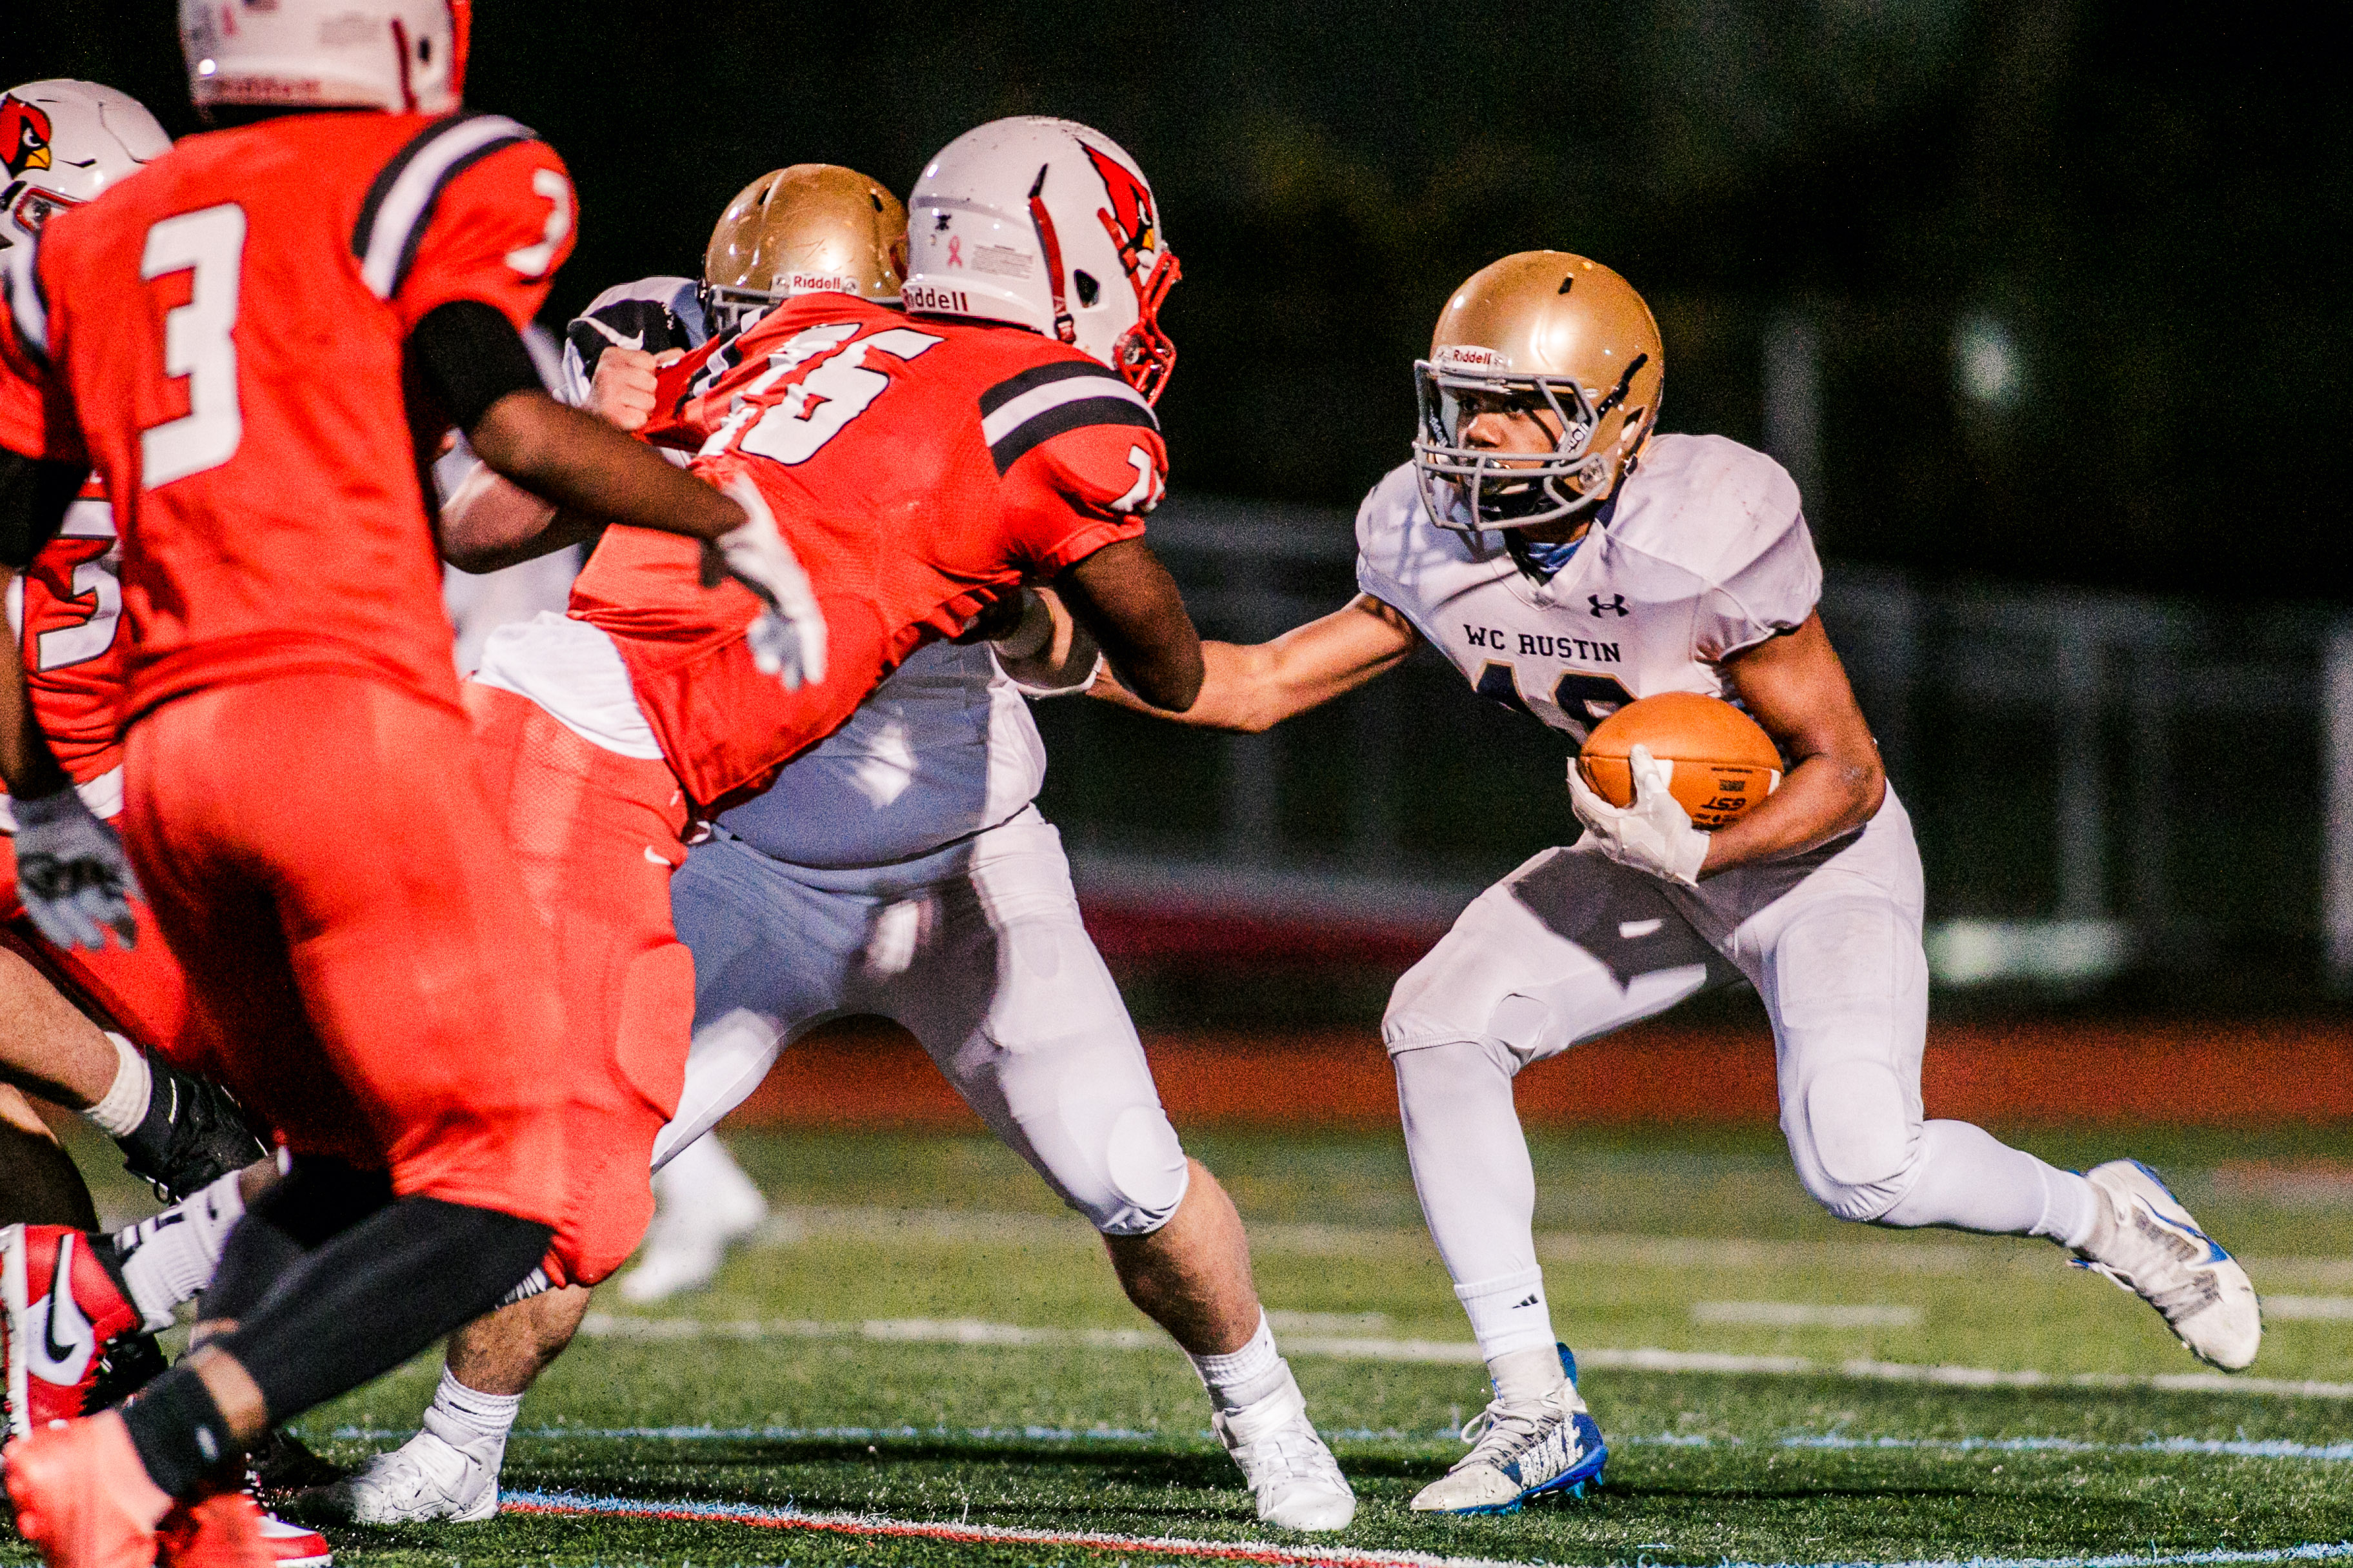 West Chester Rustin's Dayshawn Jacobs looks for running room, but could not find much against Upper Dublin. (Nate Heckenberger - For MediaNews Group)